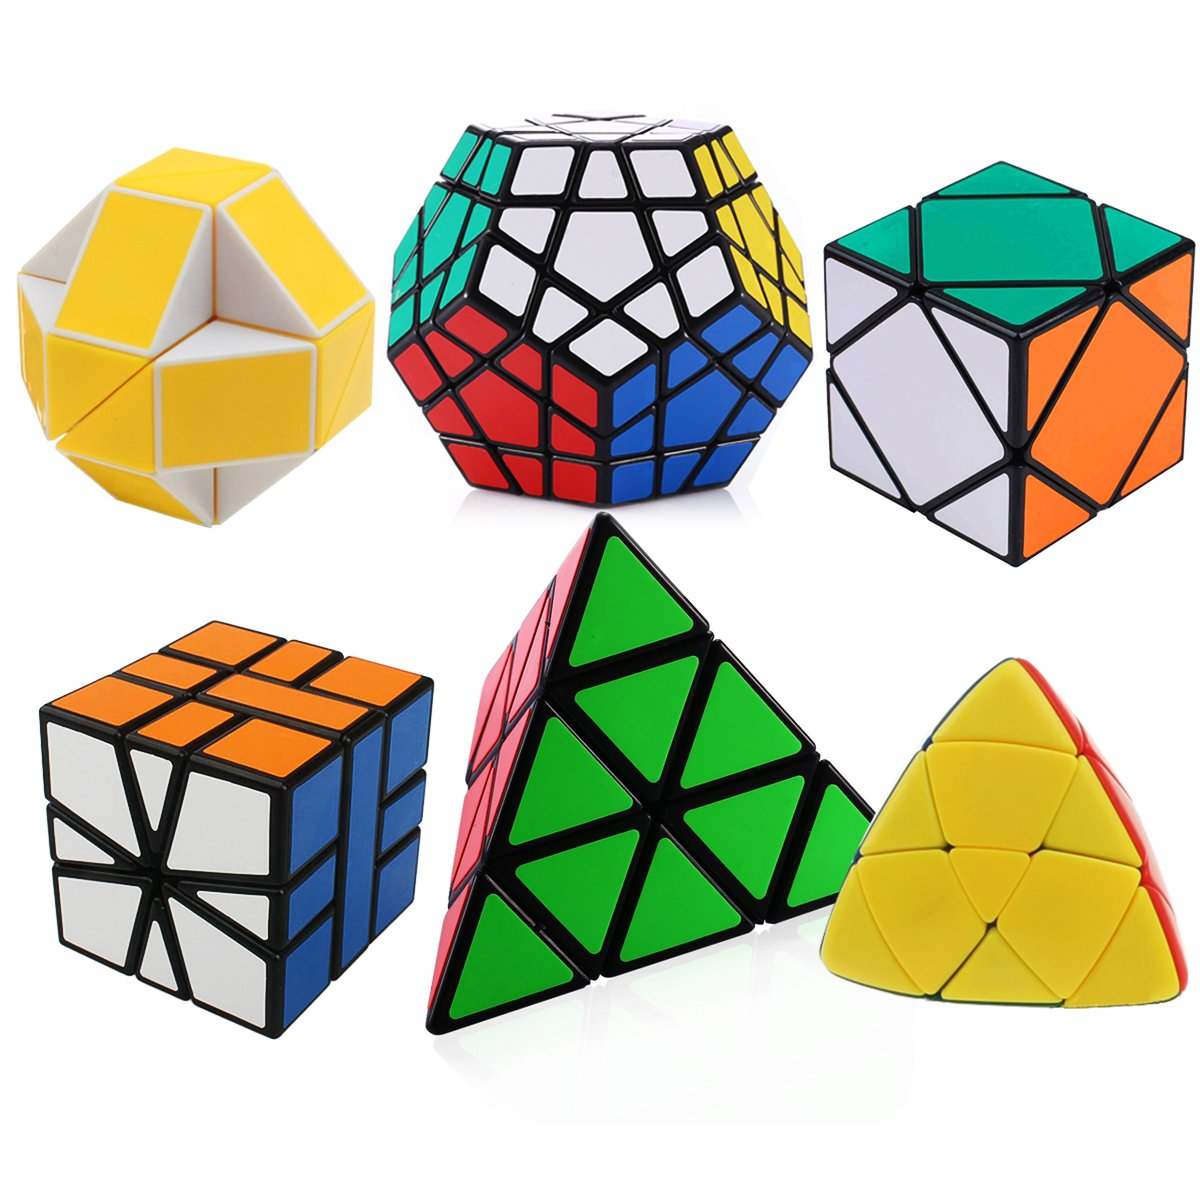 Dreampark Set of 6 Magic Speed Cube Pyraminx, Megaminx, Oblique, Mastermorphix, Square-1 SQ1 and Magic Snake Yellow and White Twisty Toy Puzzle - Perfect Gift Puzzle Box for Kids, teens, and adults.